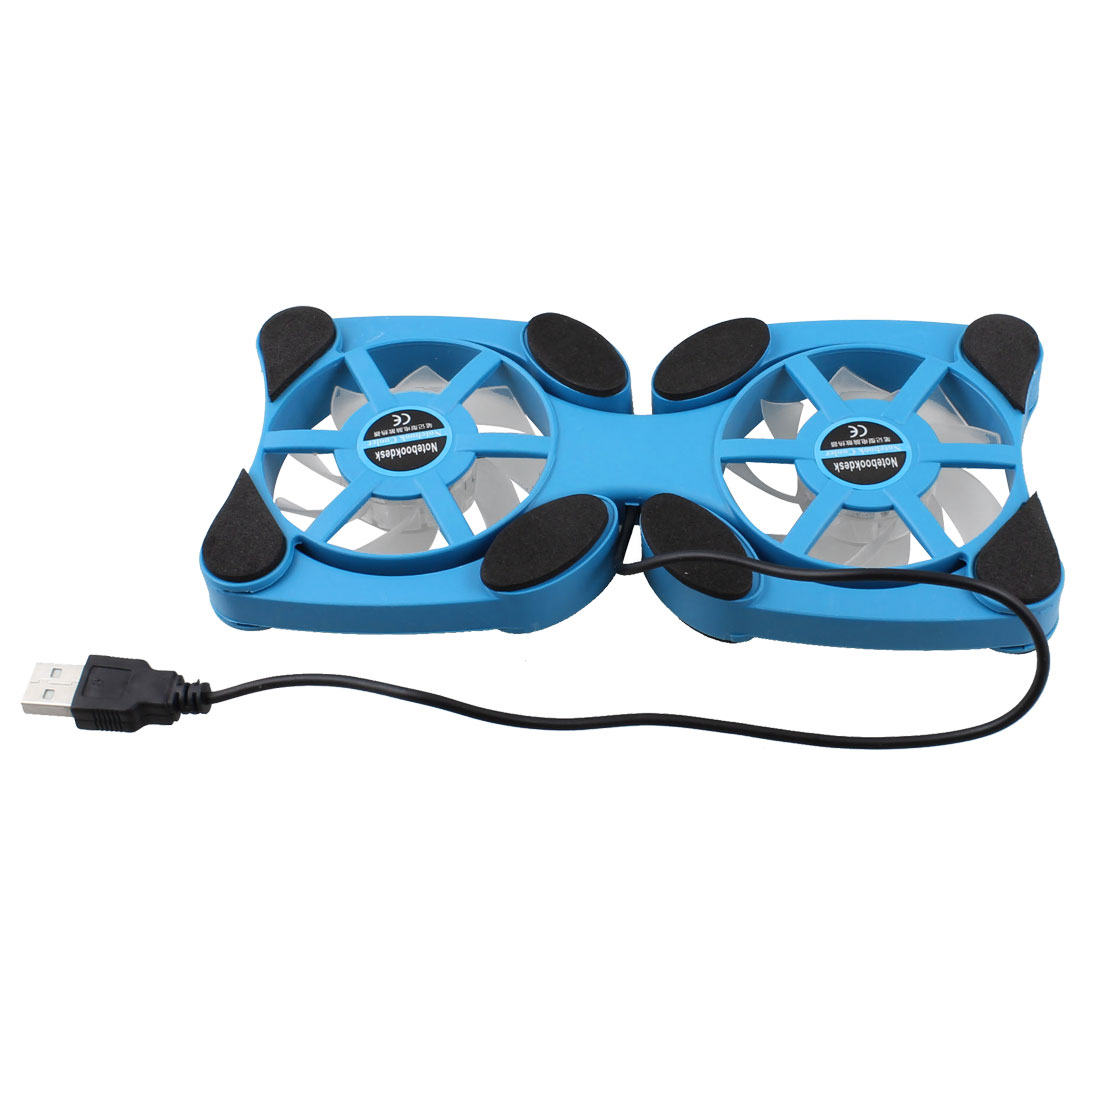 Laptop Notebook Blue Plastic Shell Foldable USB Cooler Cooling Fan Pad